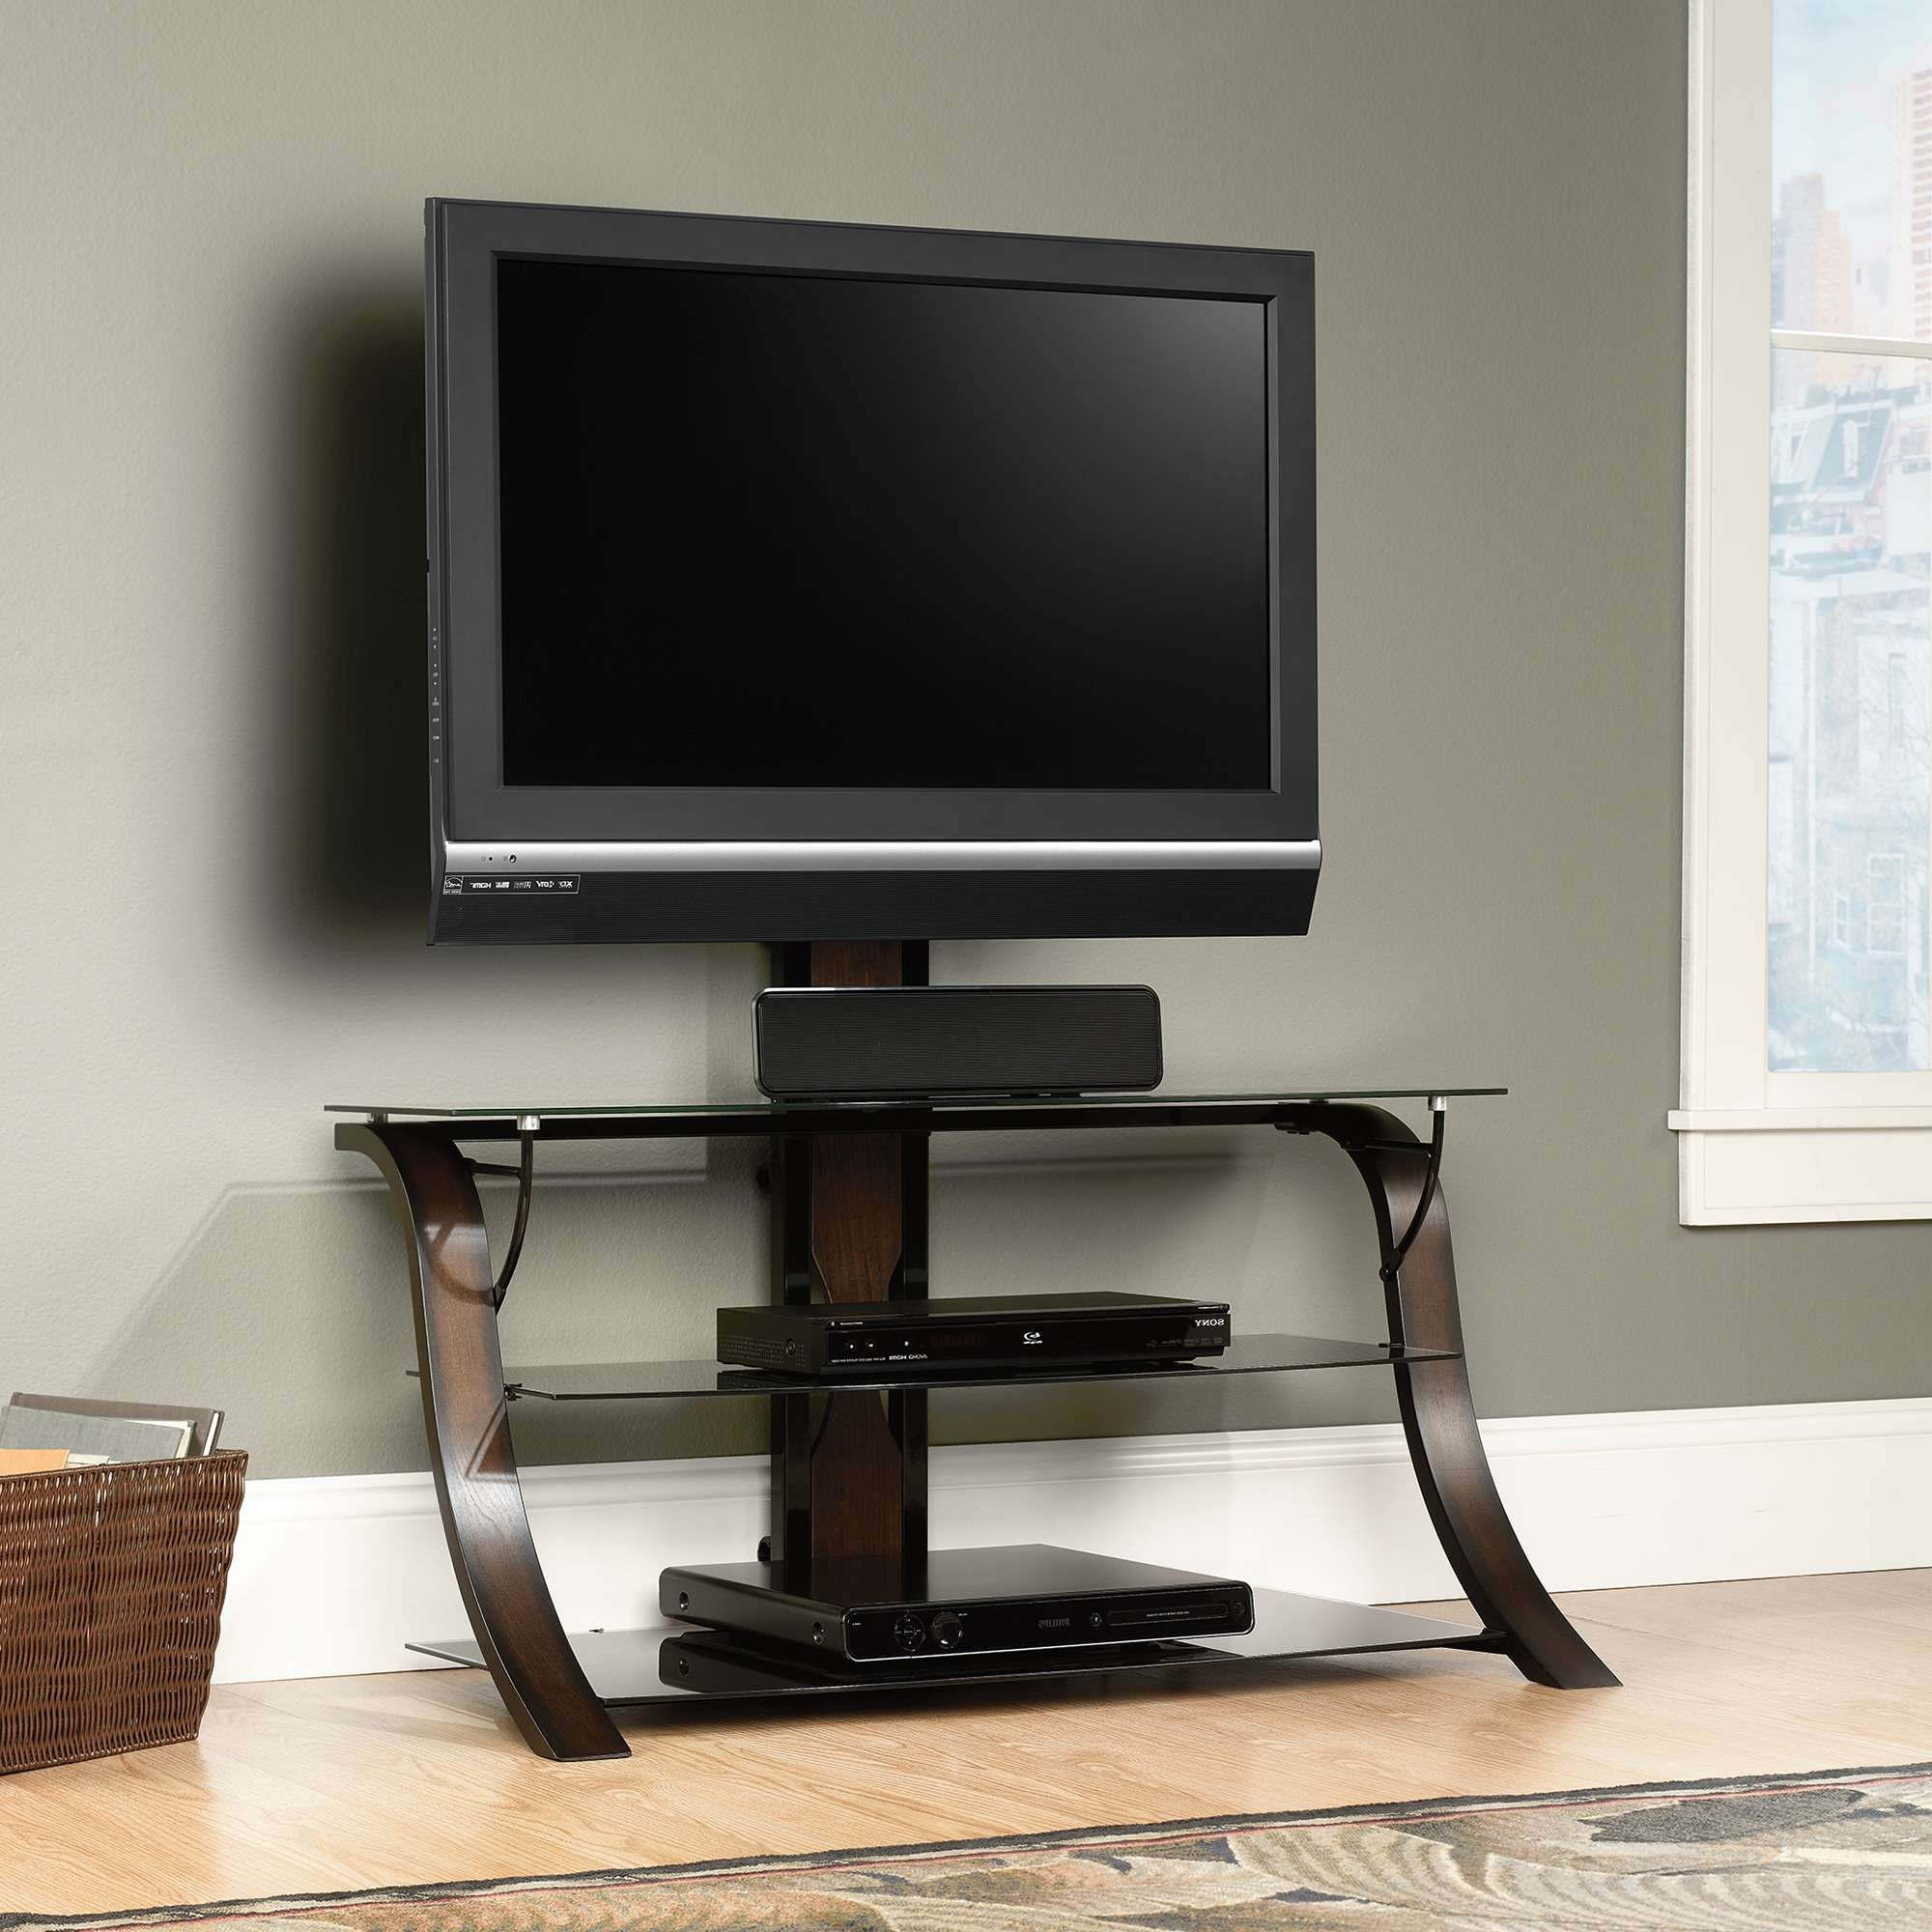 Swanky Tv Stands Ideas Rustic Tv Stands Home Design Ideas To In Unique Tv Stands For Flat Screens (View 4 of 20)